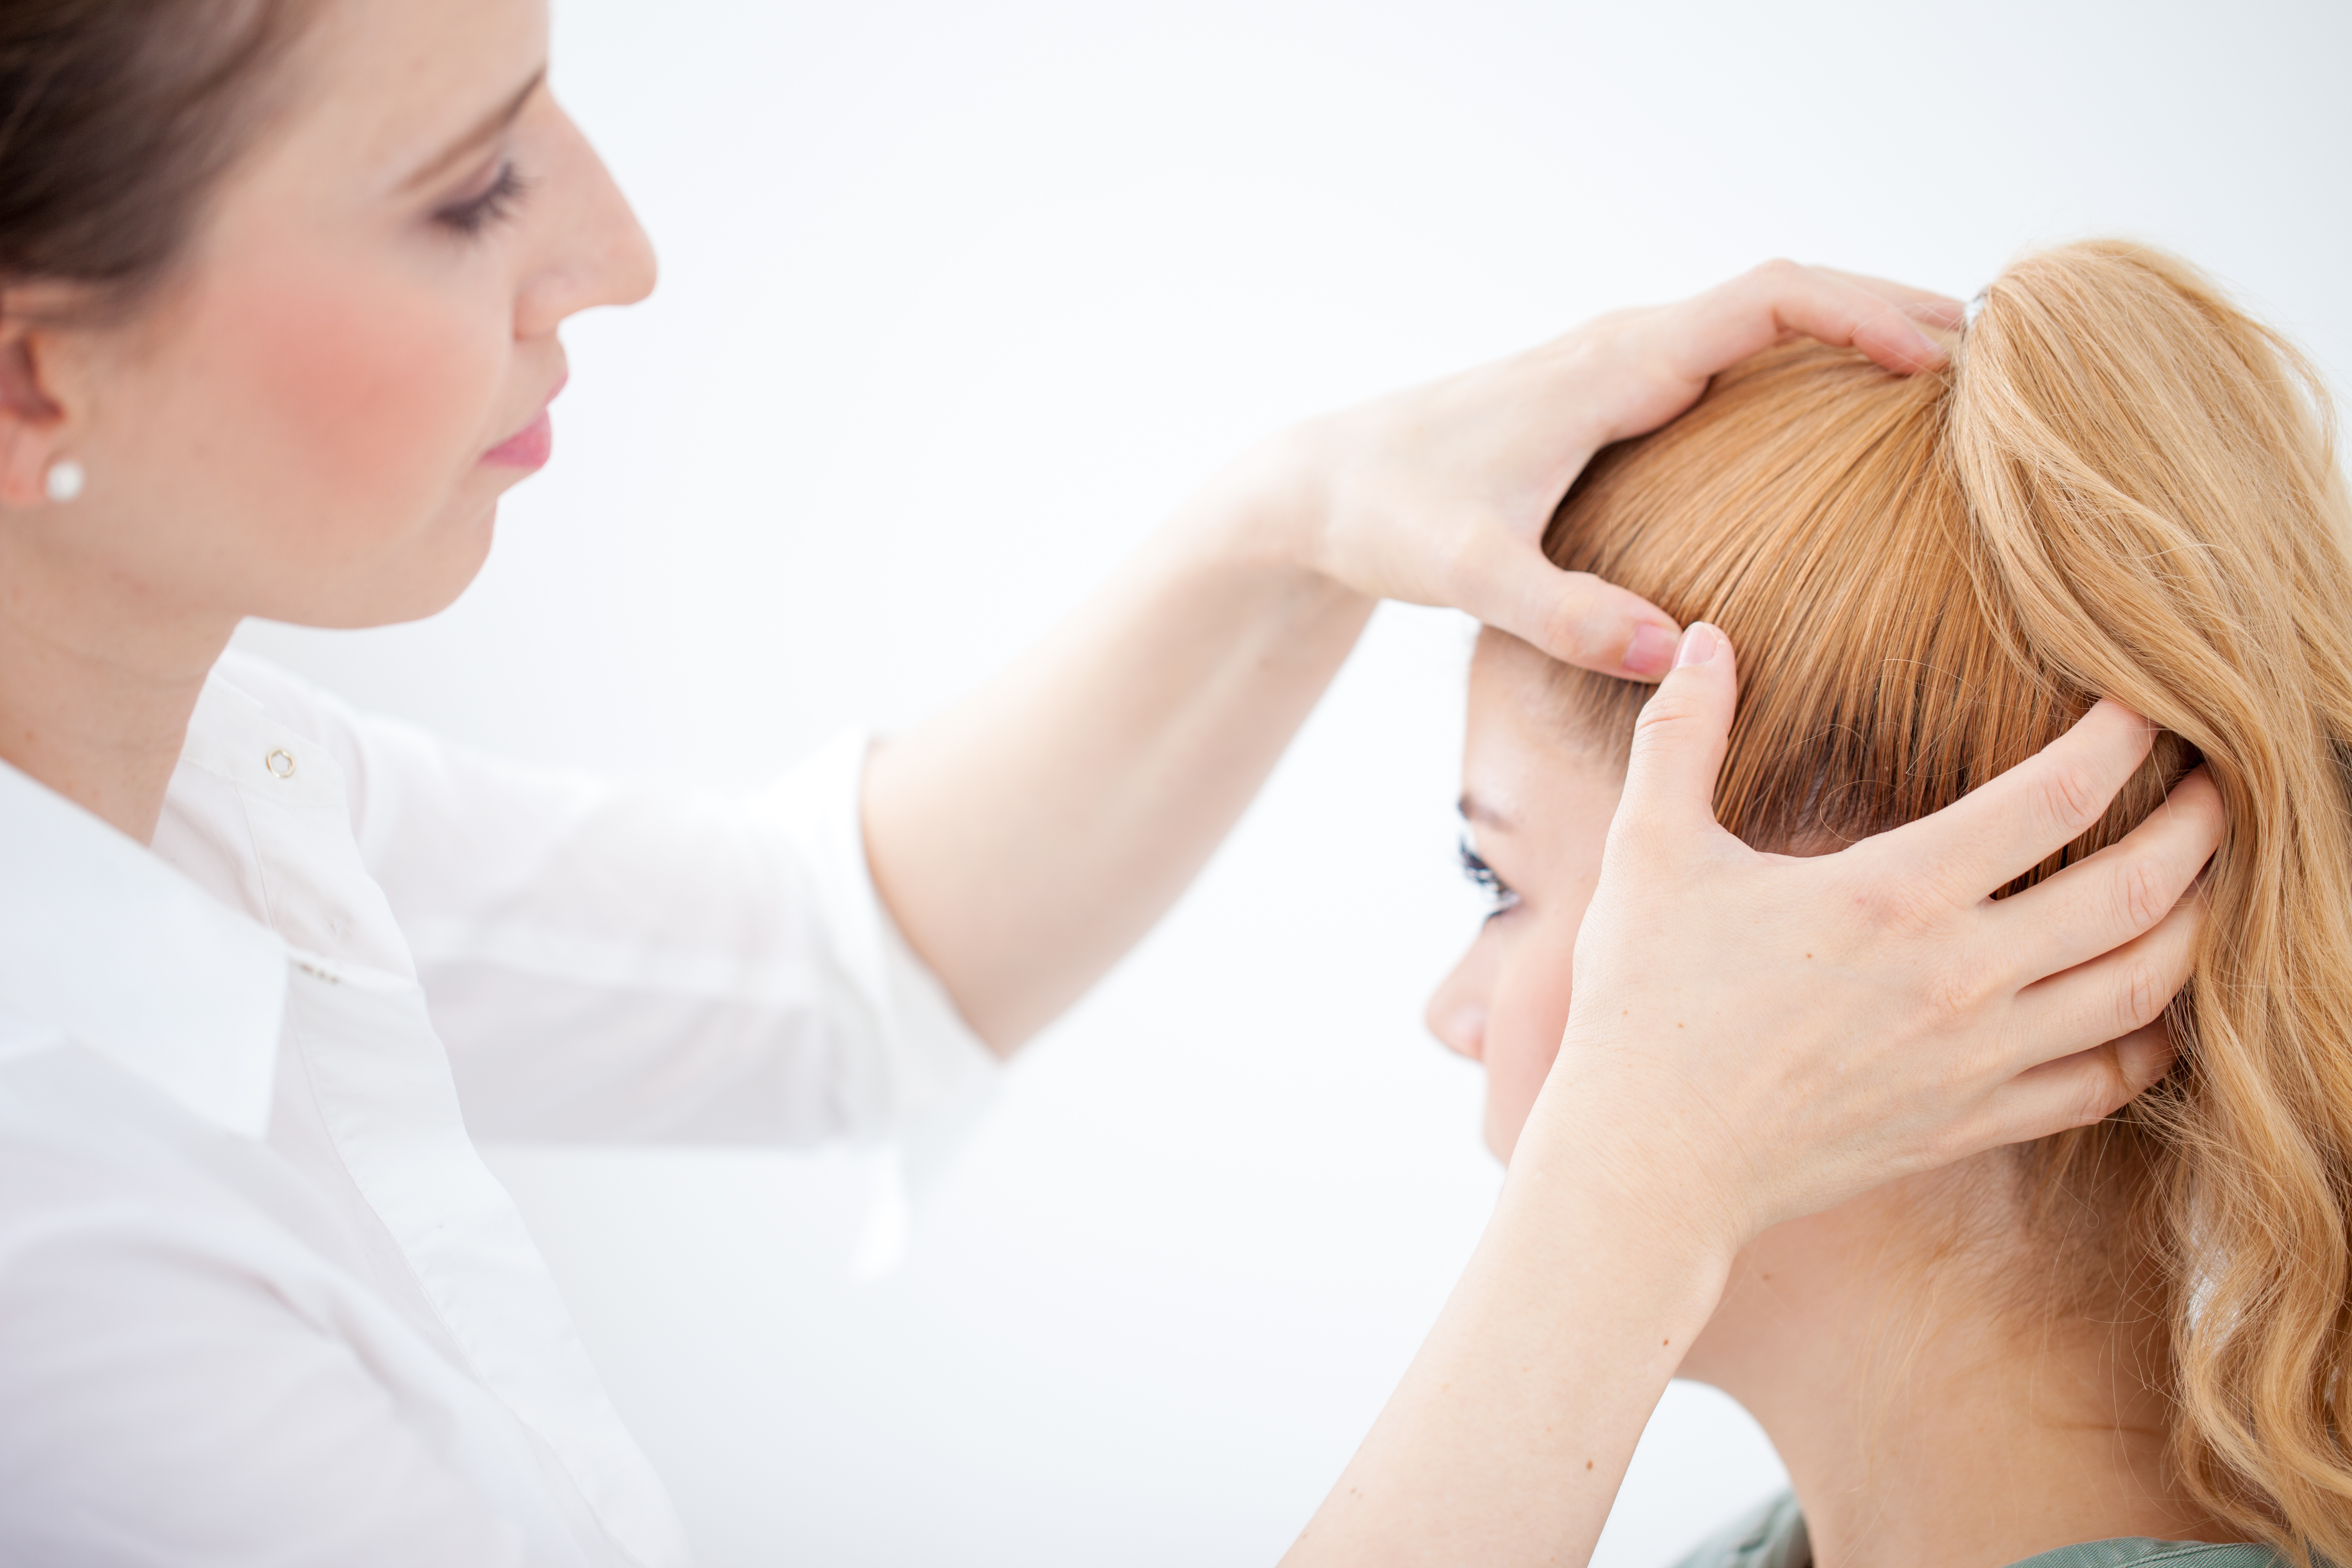 Scalp psoriasis: Shampoos, scale softeners, and other